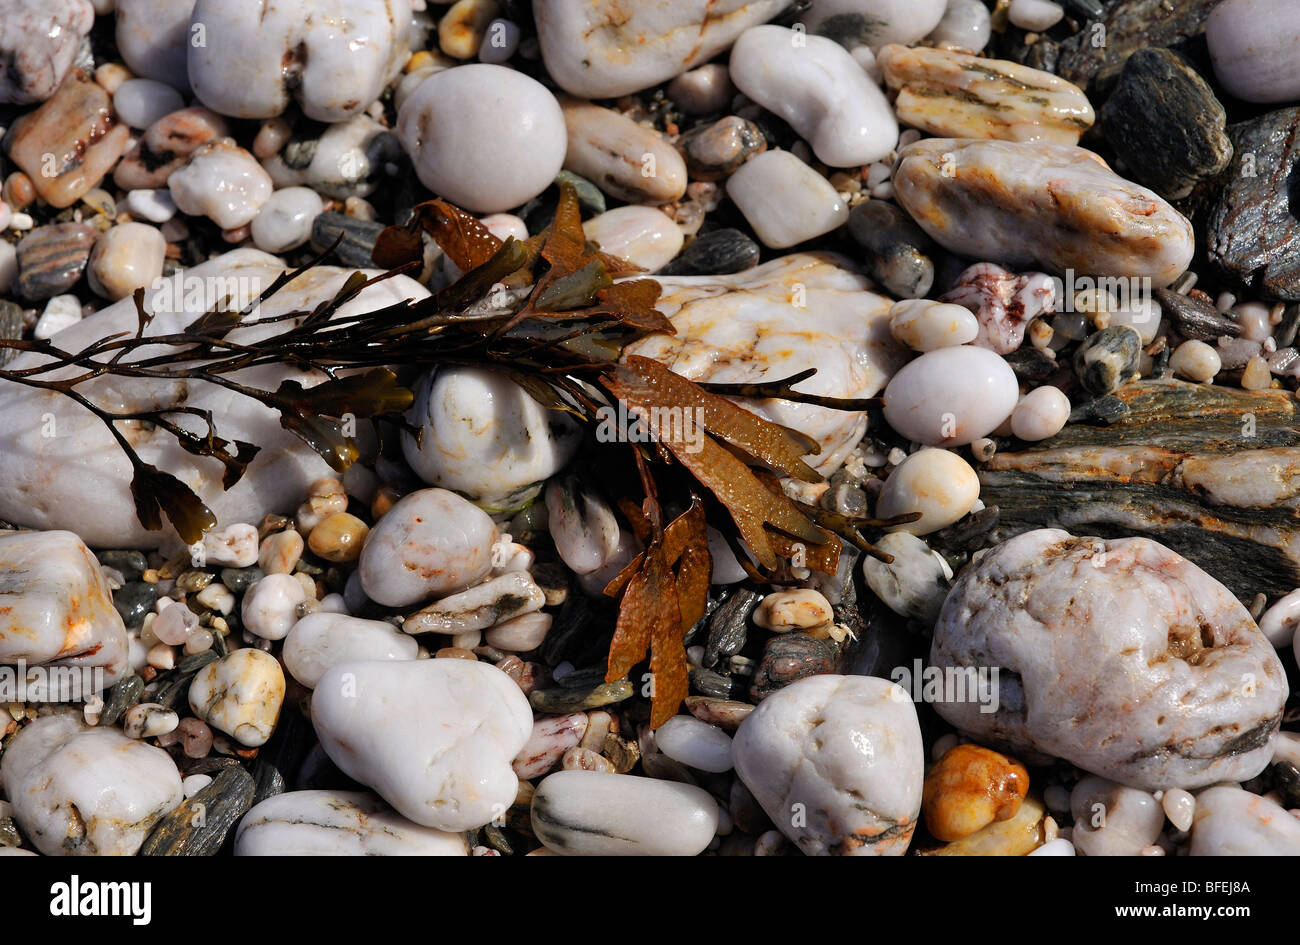 SEAWEED AND PEBBLES ON A BEACH - Stock Image